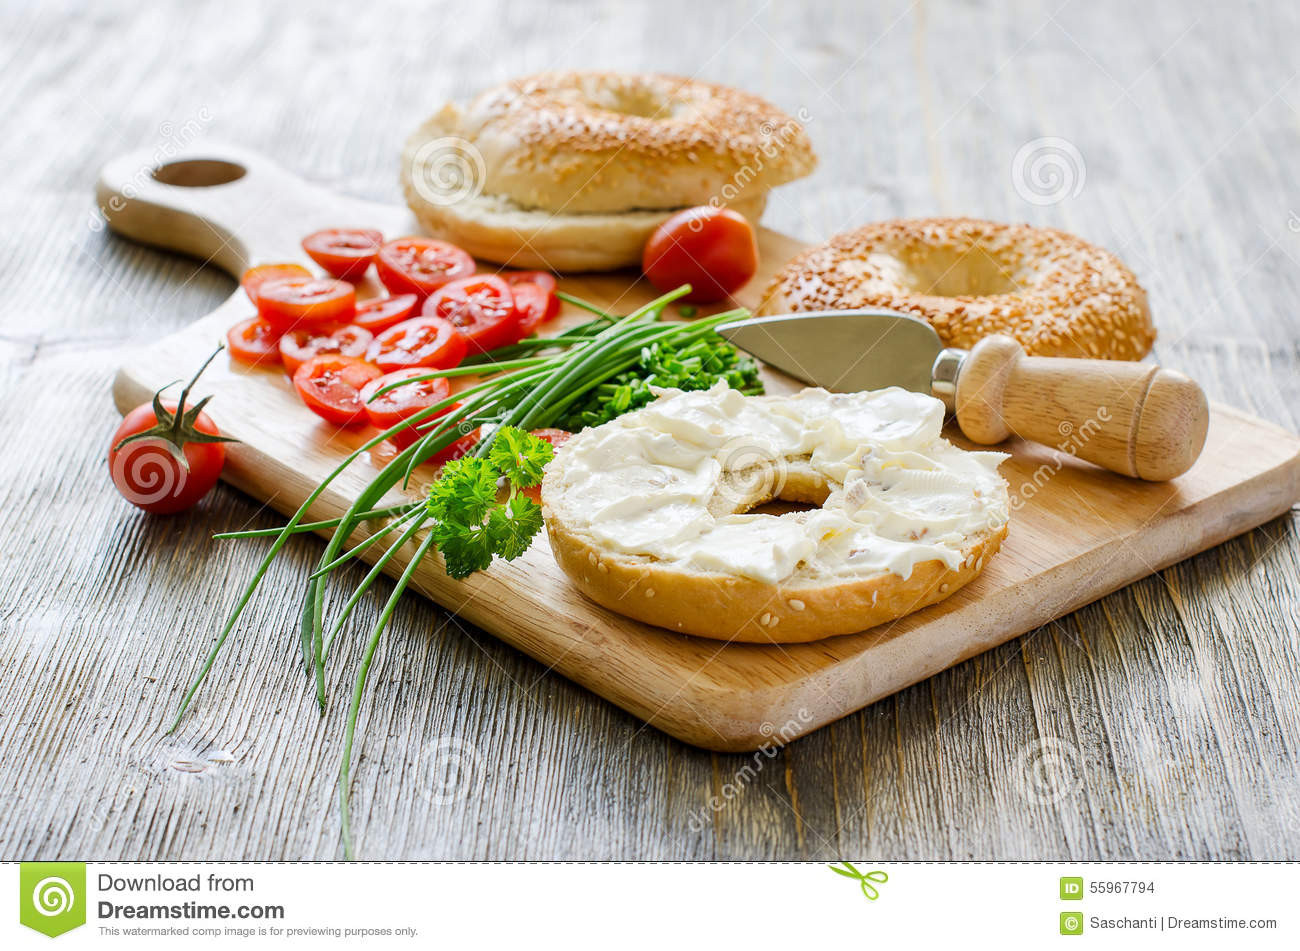 Healthy Snacks With Cream Cheese  Bagels Wtih Cream Cheese Tomatoes And Chives For Healthy